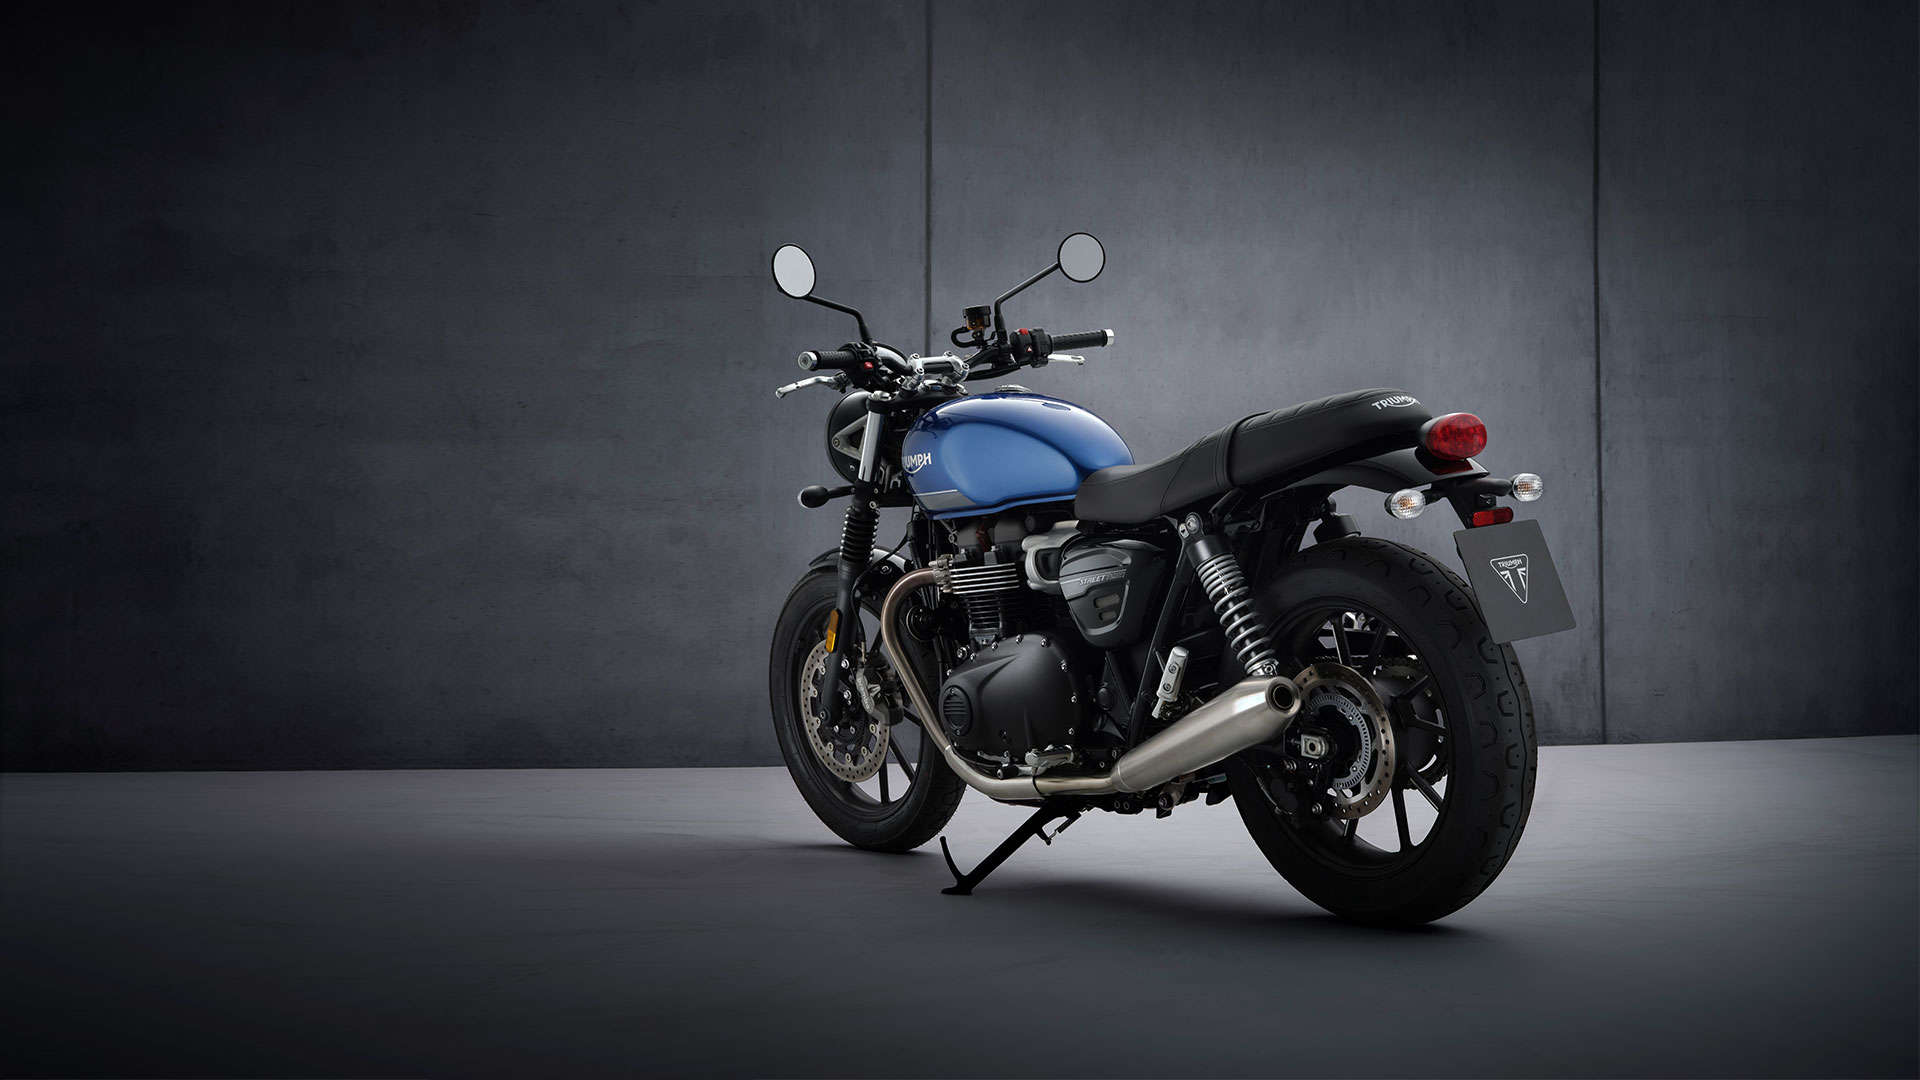 Only 30 Street Twin Gold Line Edition bikes will be available in India out of the 1,000 being produced globally, the company said.